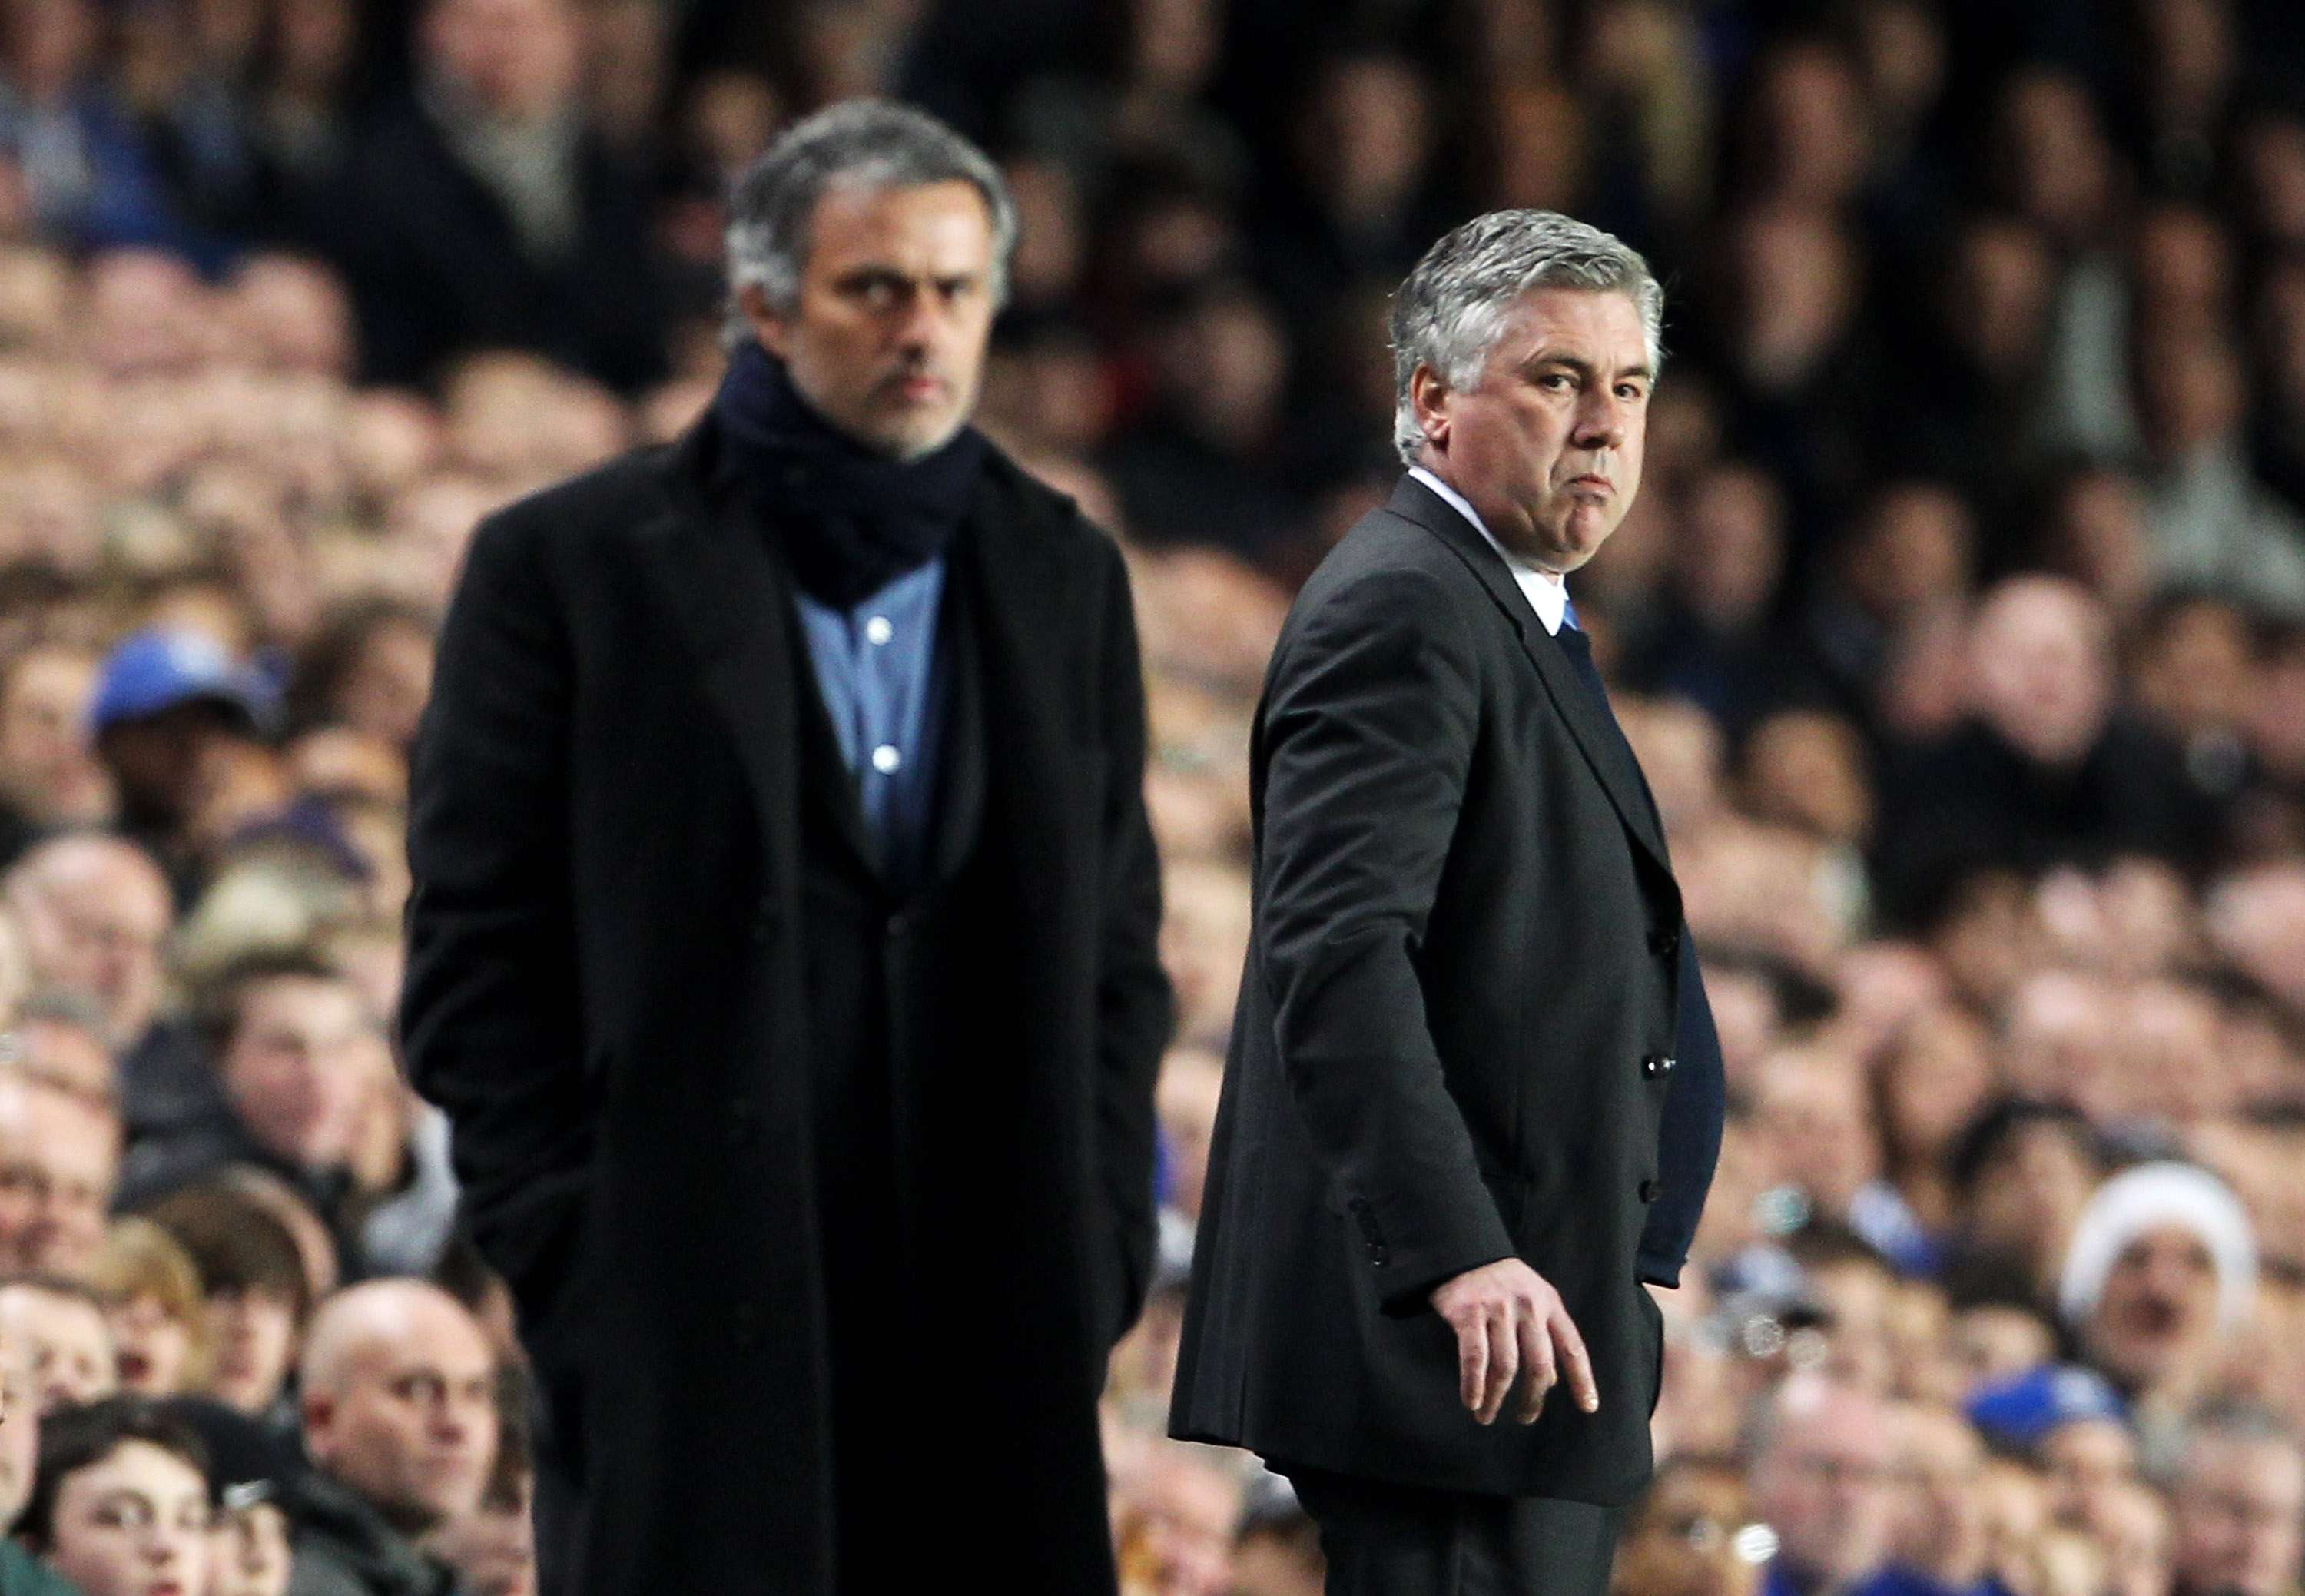 Mourinho y Ancelotti. Foto: Getty Images